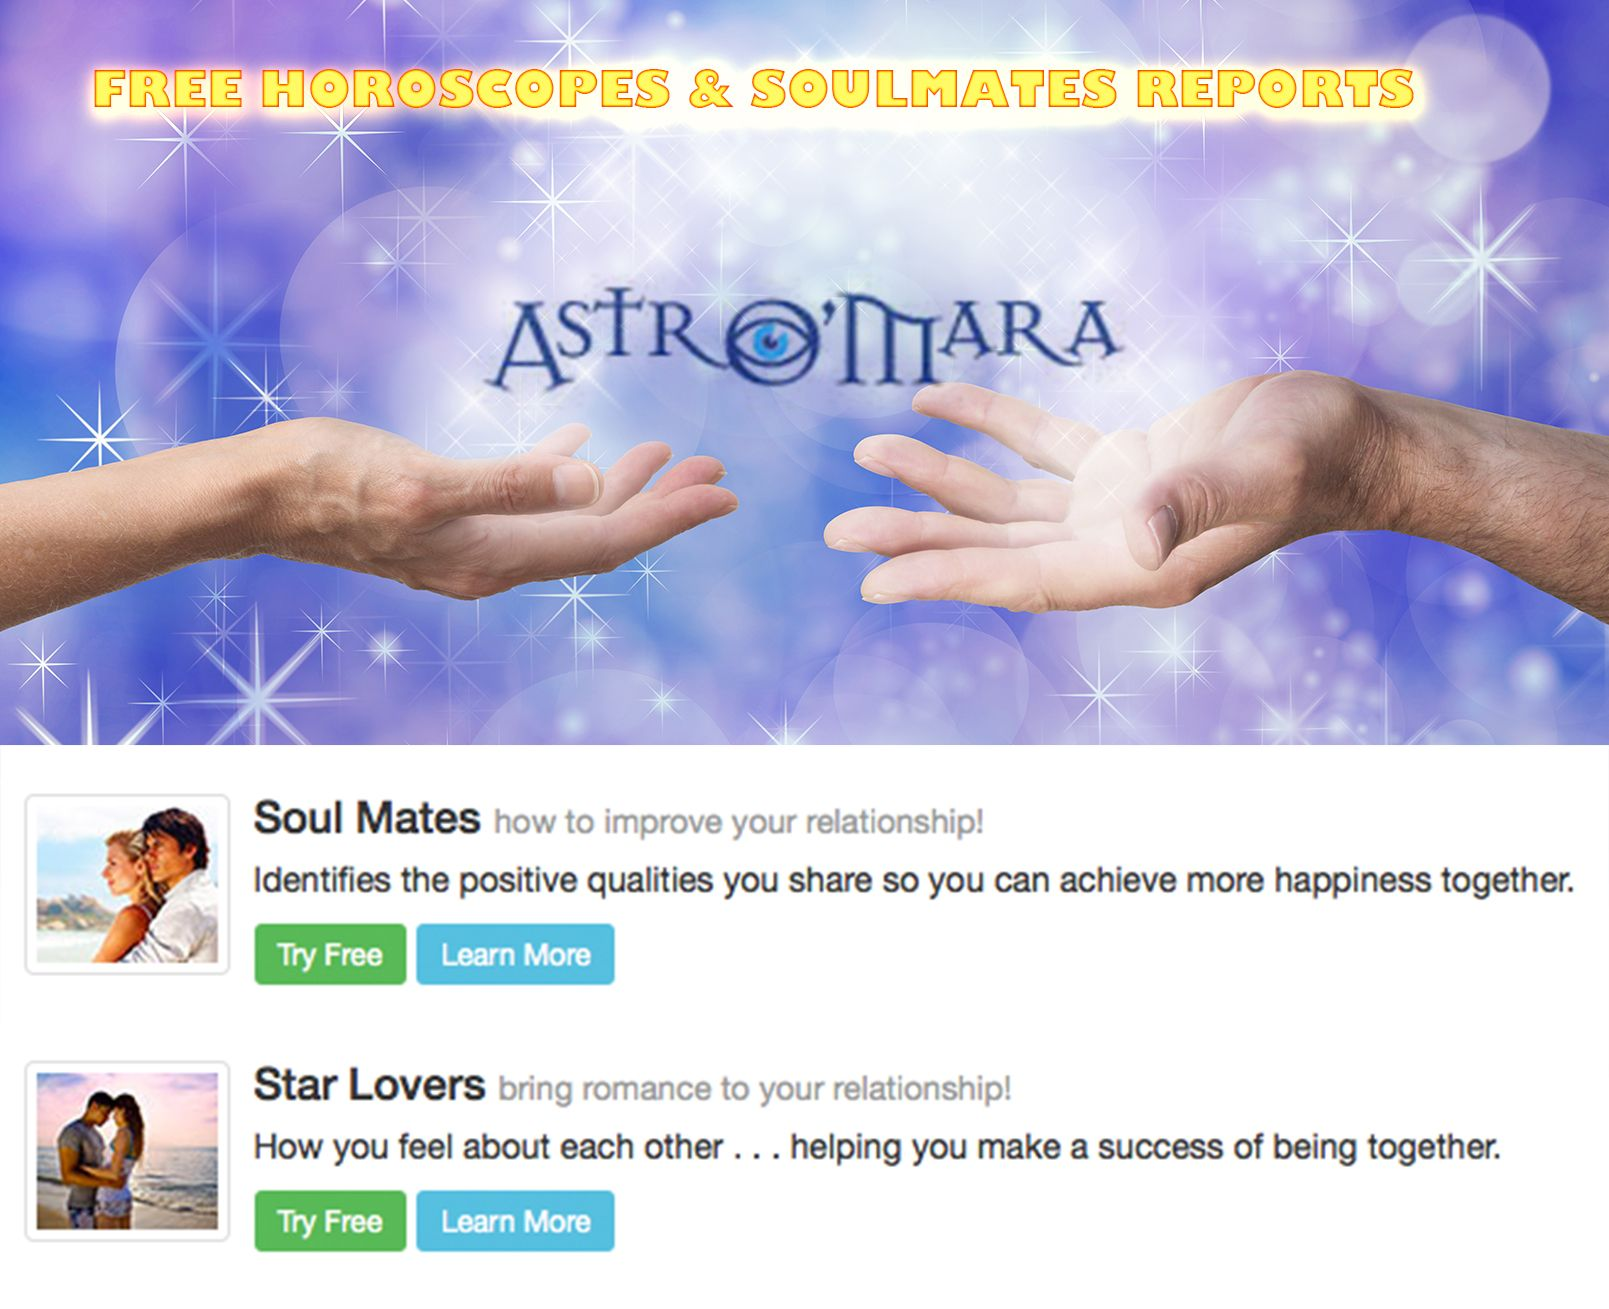 Daily Horoscopes & New Soulmates and Starlovers Astrology reports http://www.astromara.com/horoscopes